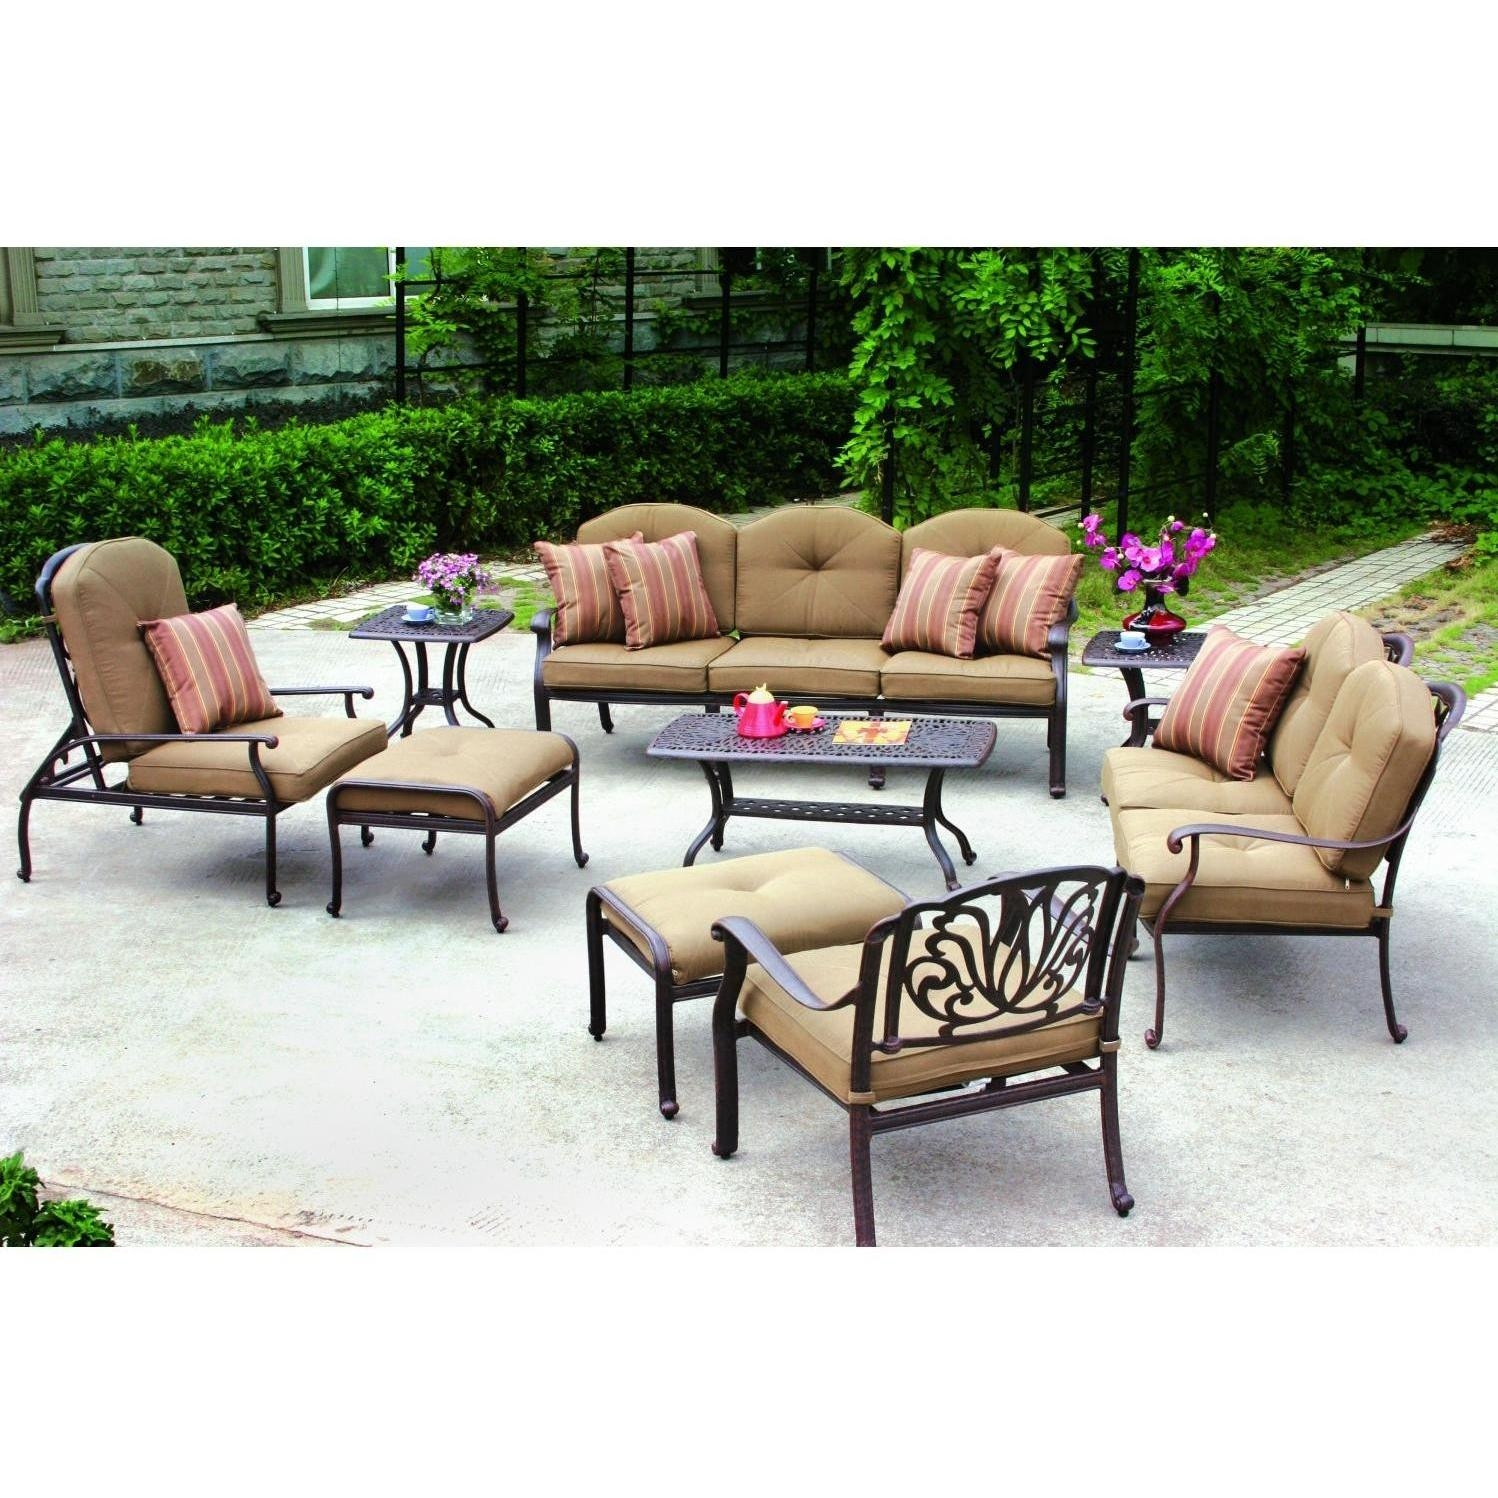 Overstock Outdoor Furniture | Overstock Bedding Sets | Overstock Patio Dining Sets